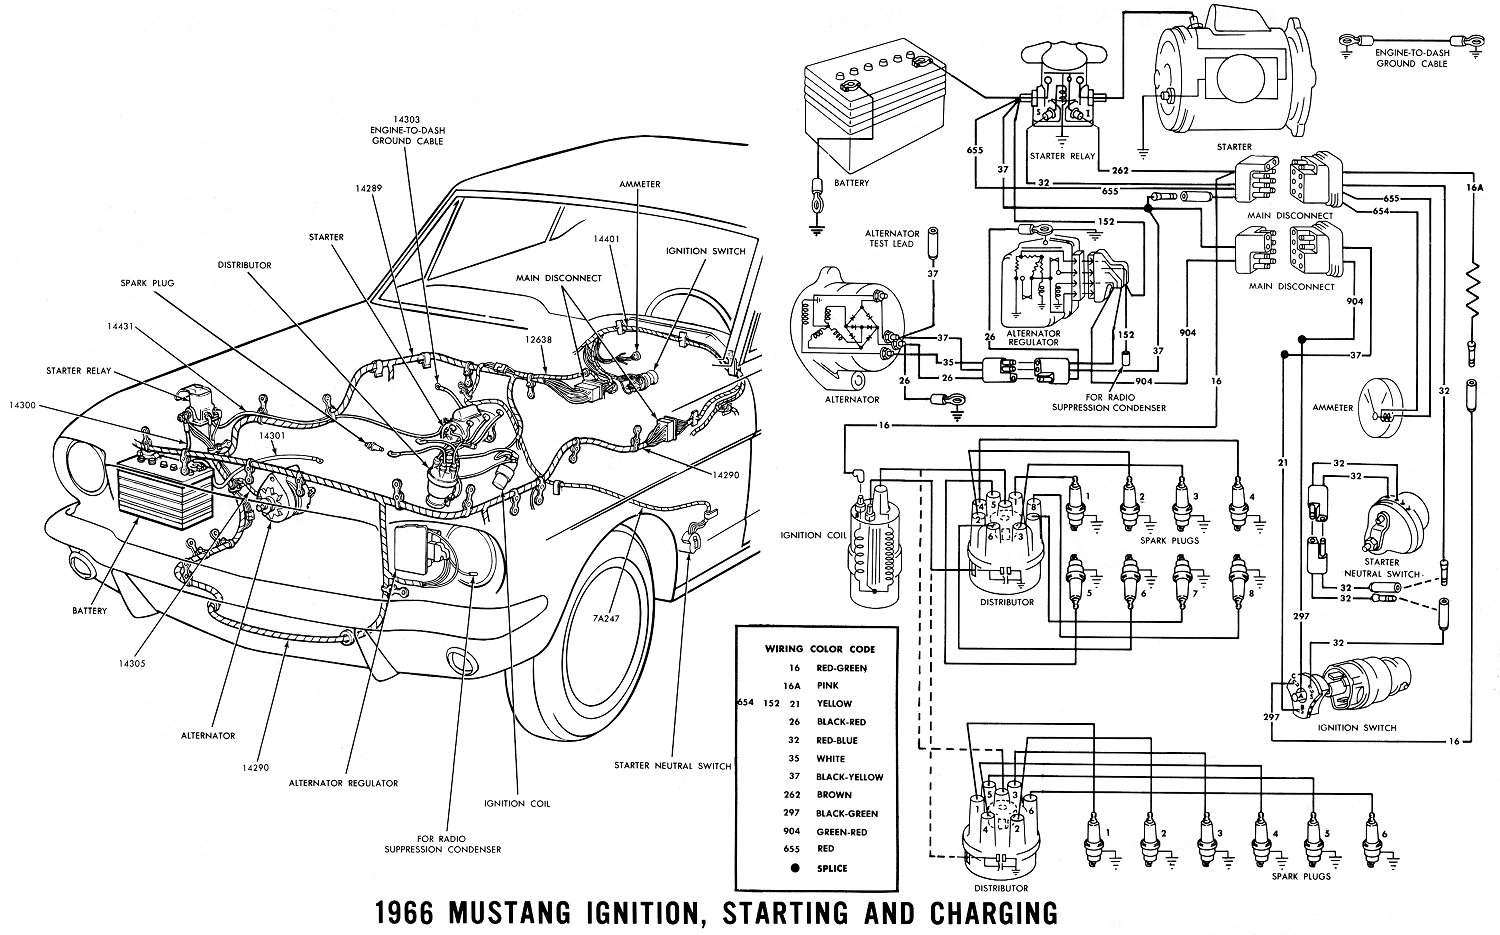 1966 Mustang Wiring Diagrams on 68 camaro wiring layout